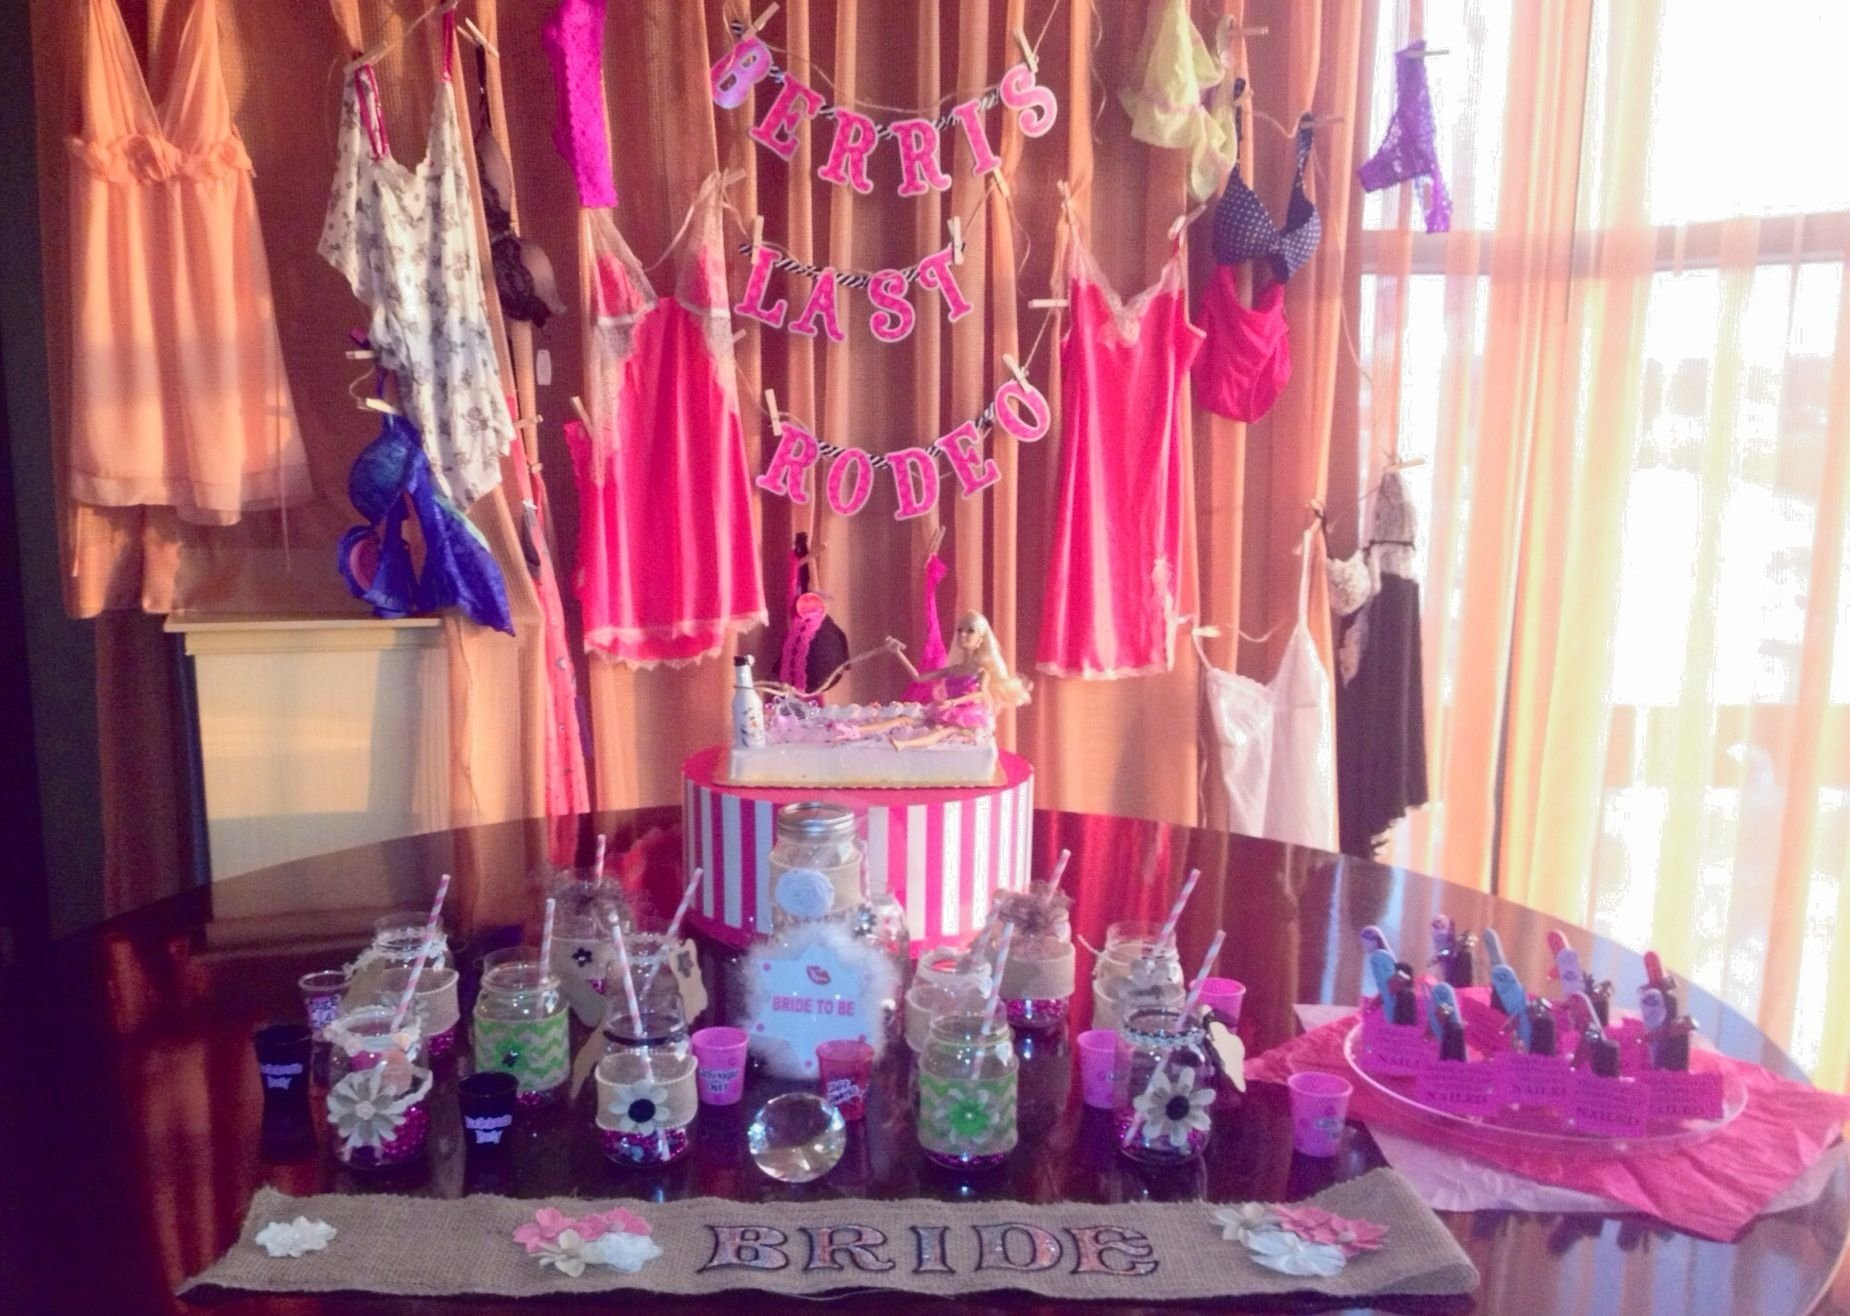 10 Beautiful Bachelorette Party Ideas In Nyc last rodeo bachelorette party theme party decor and ideas 3 2020